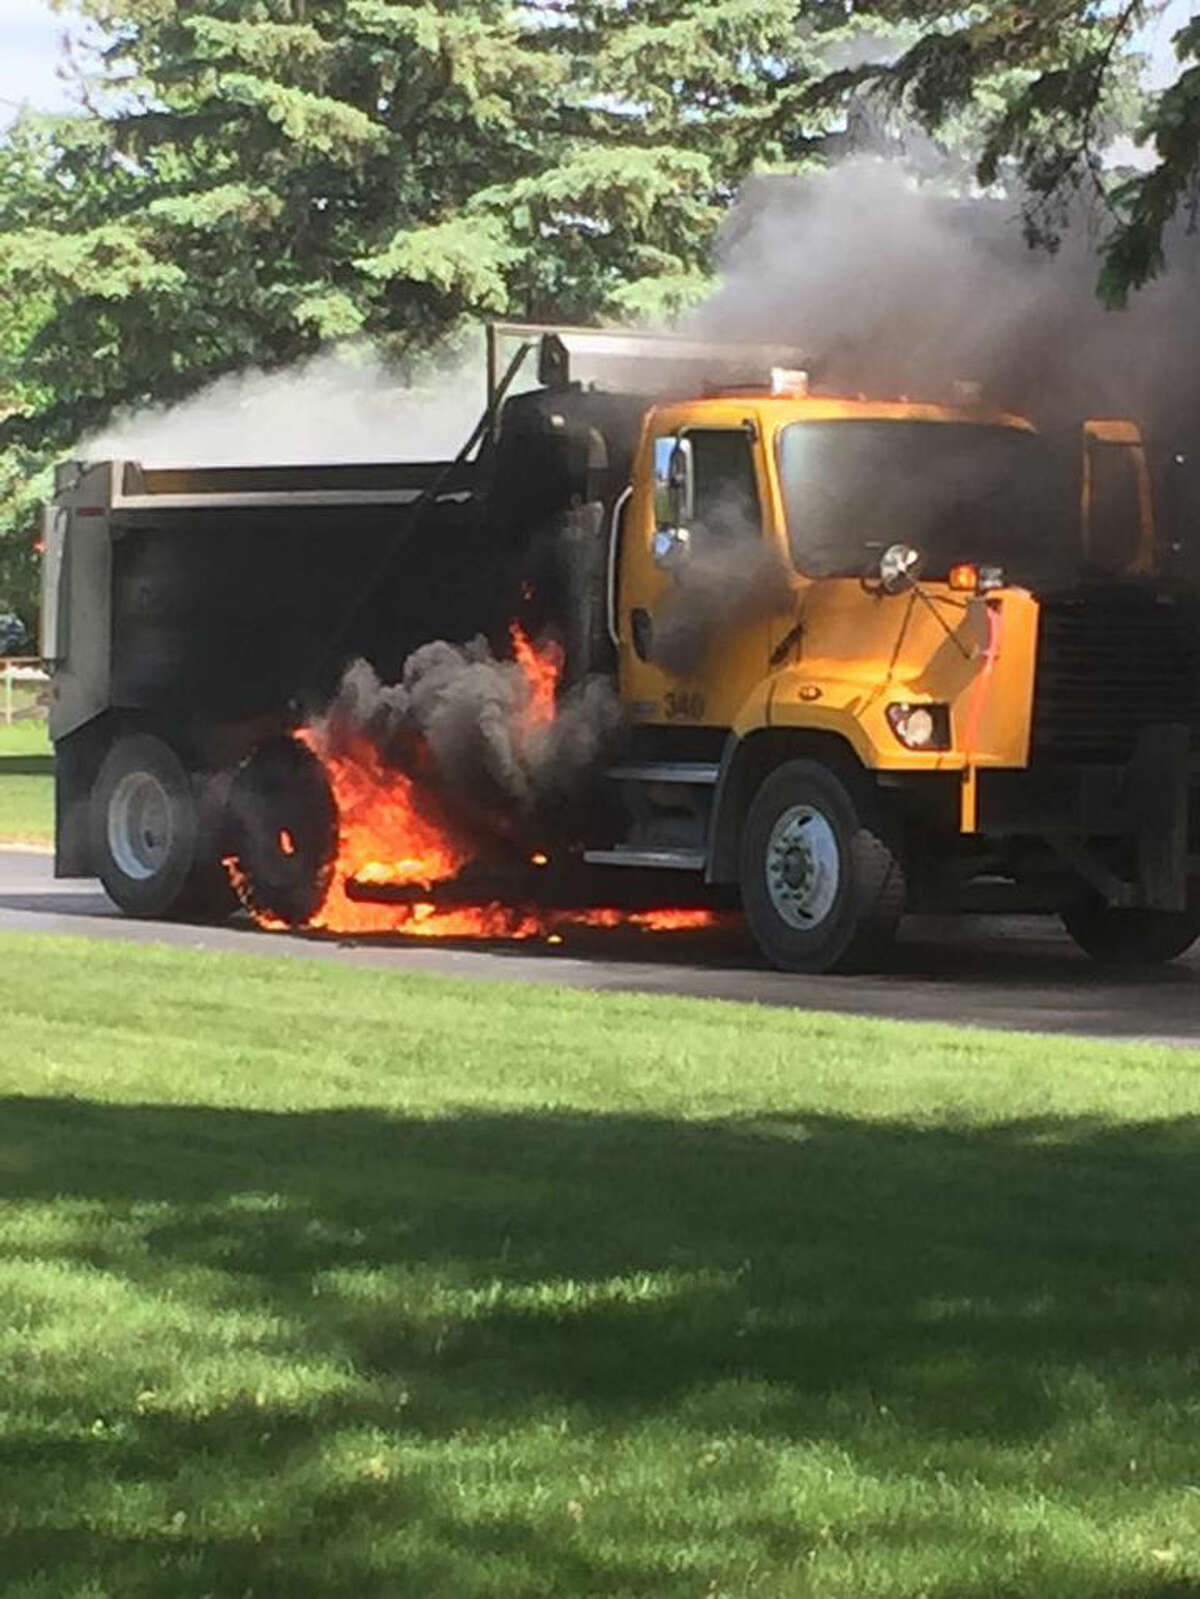 A Daily News Facebook reader took this photo as the city dump truck was burning.